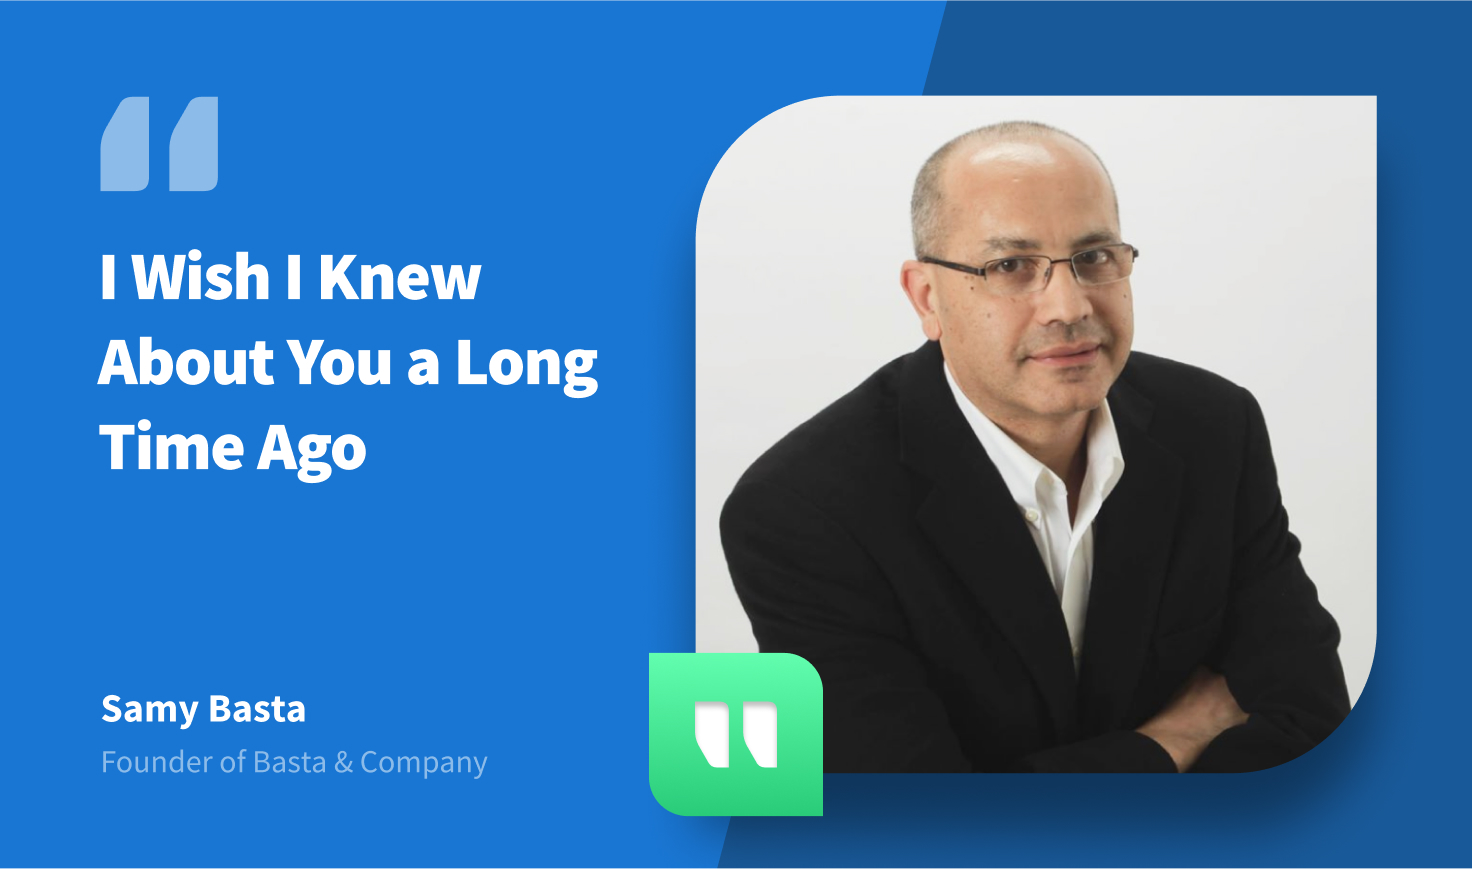 CPA Firm Basta & Company: 'I Wish I Knew About You a Long Time Ago'